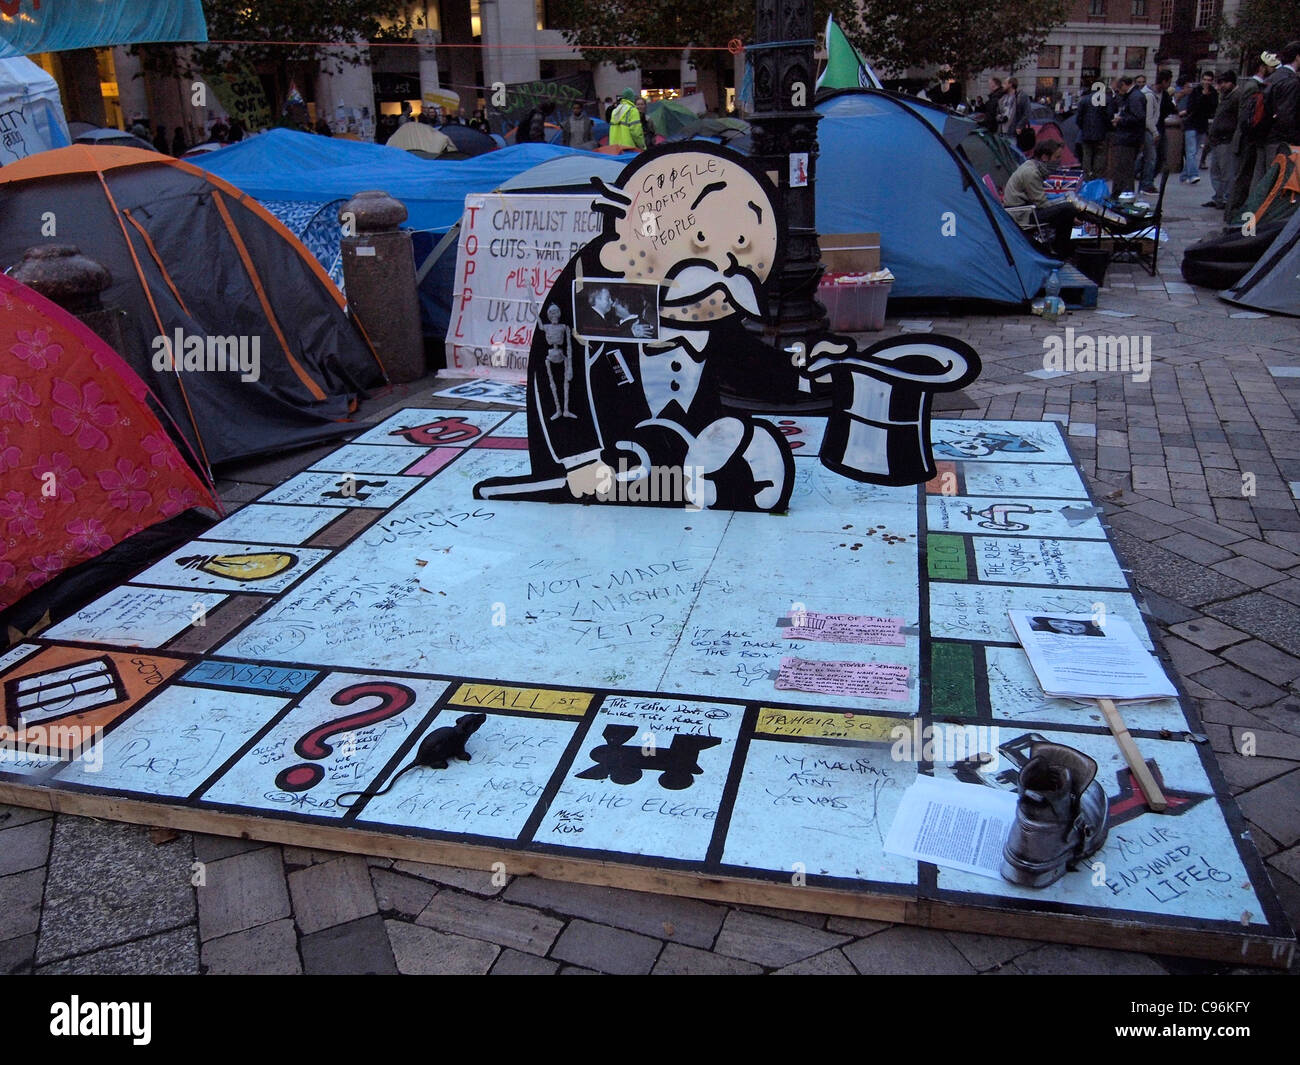 joke monopoly board mocking capitalist monetary values in anti-capitalist demonstration at St Paulu0027s Cathedral London 2011 u0026 dome tents of protesters & joke monopoly board mocking capitalist monetary values in Stock ...